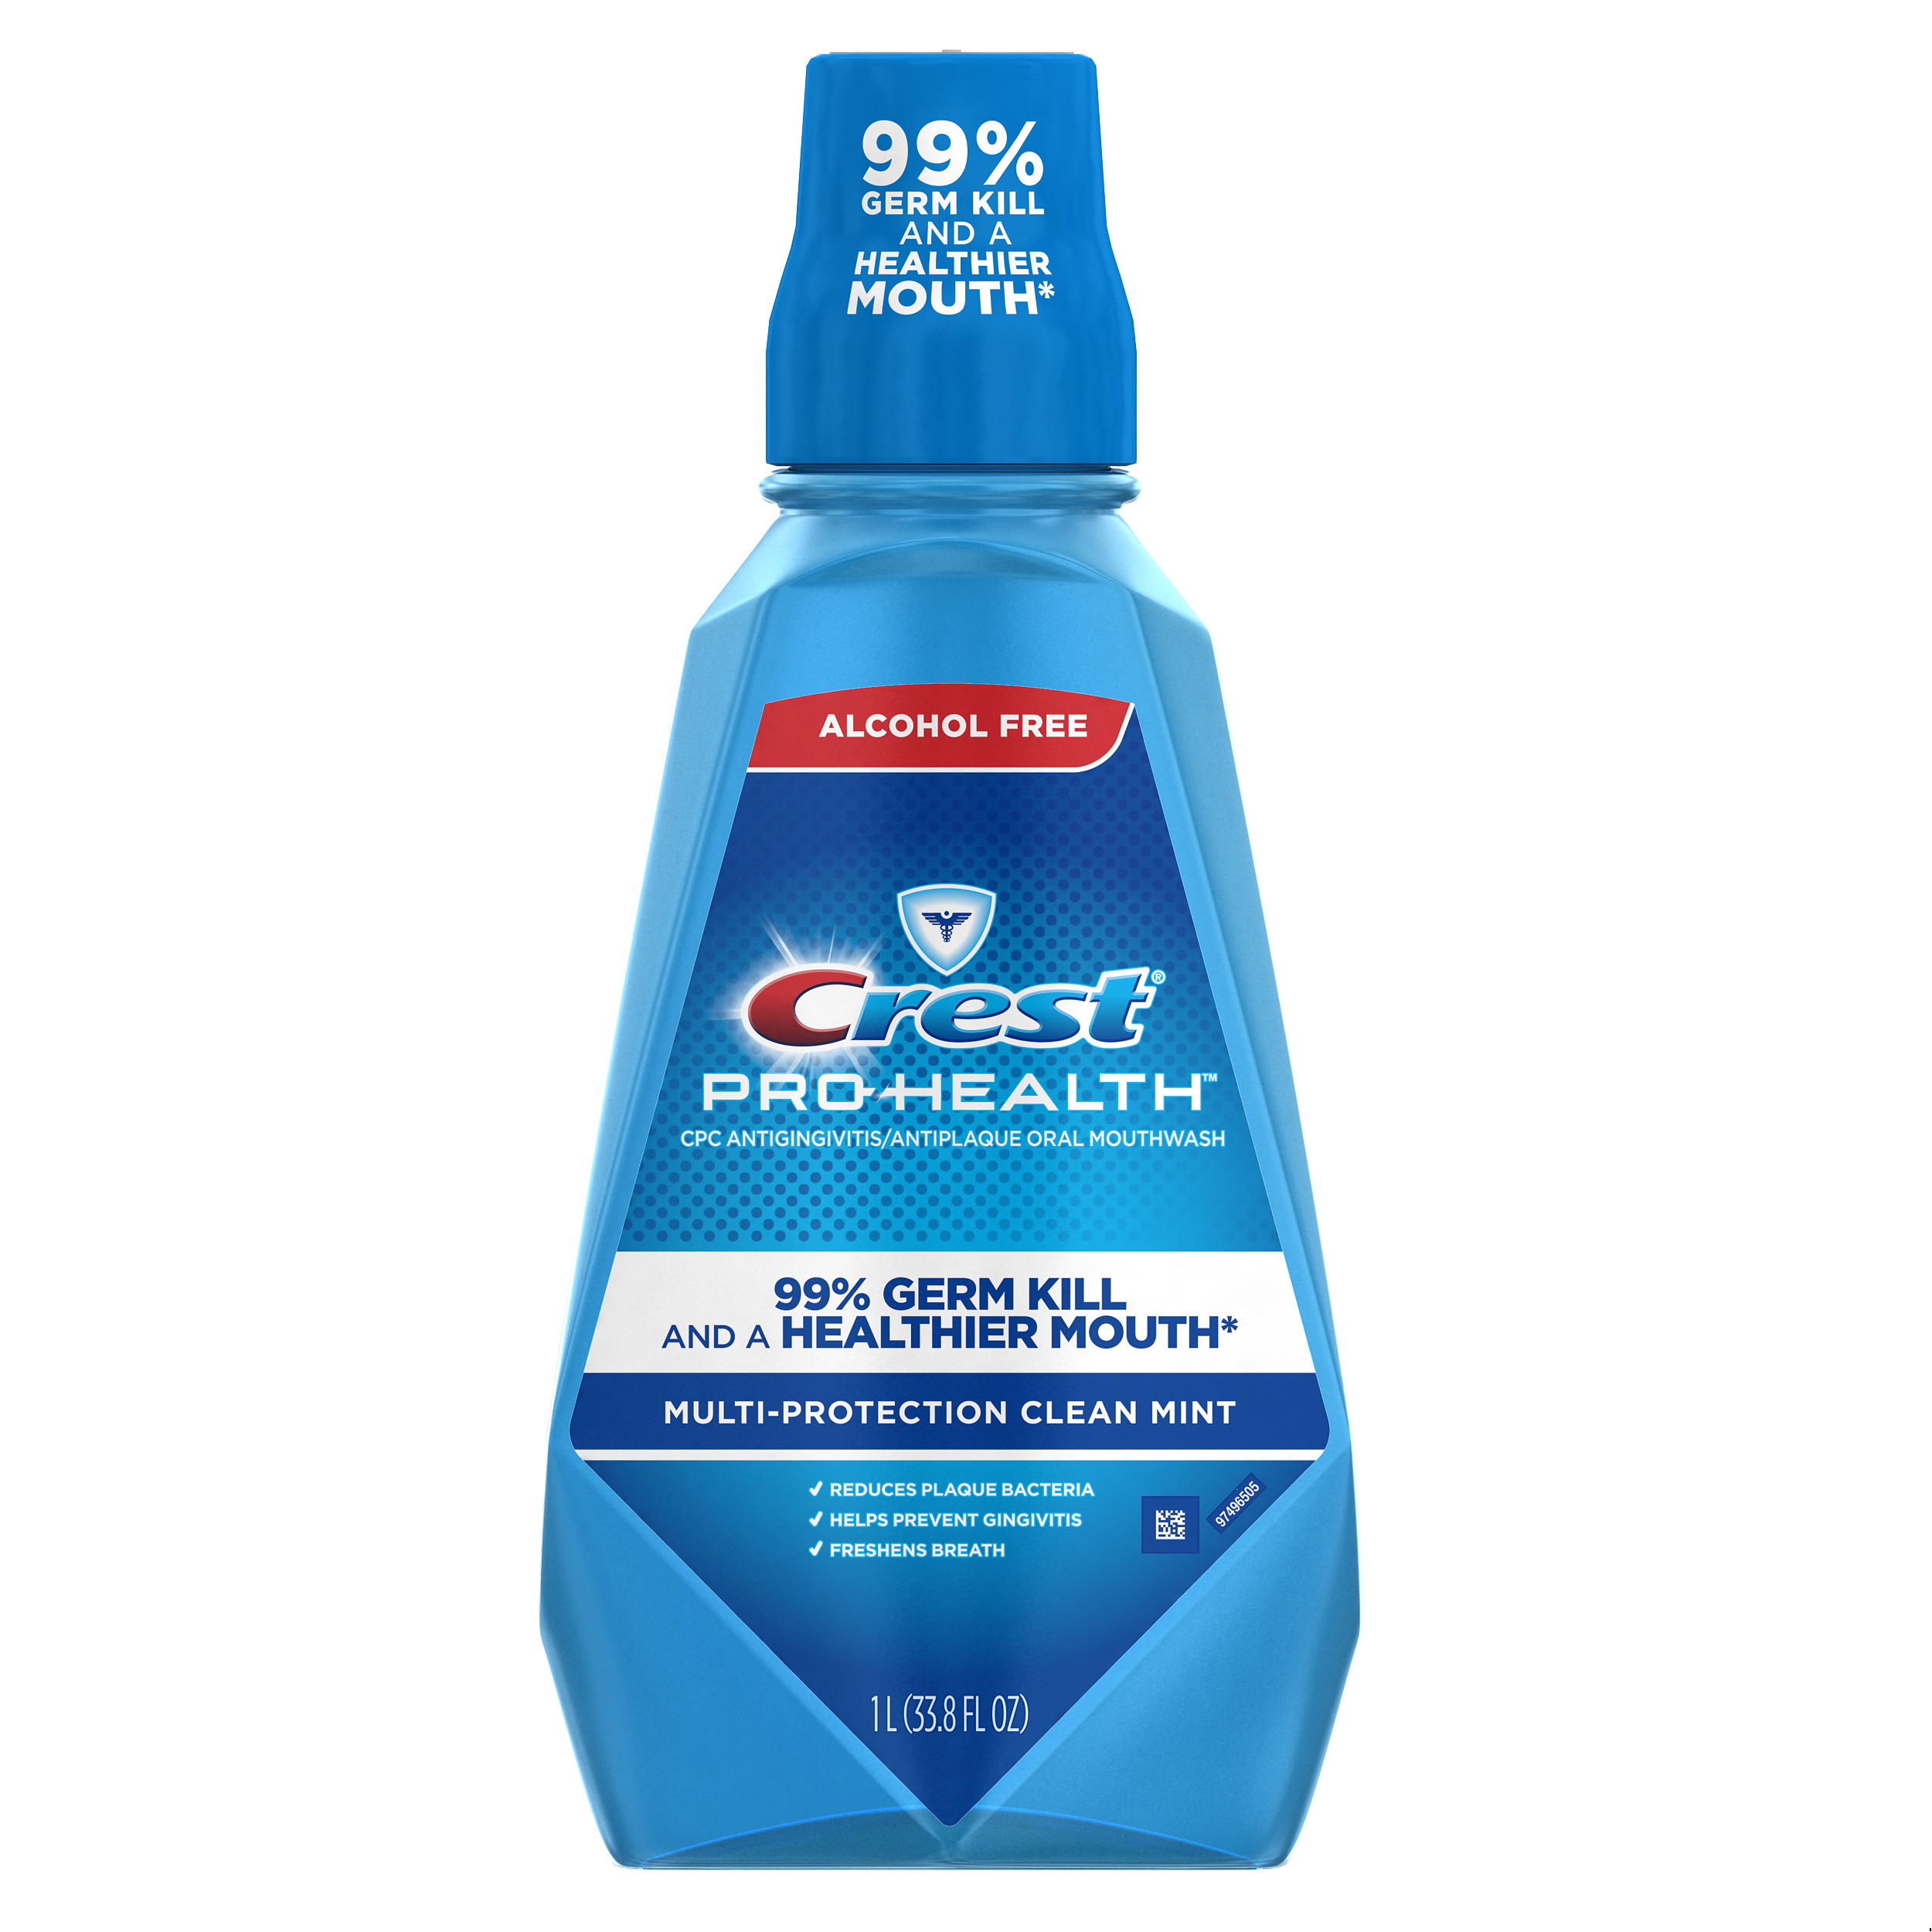 Crest Pro-Health Multi-Protection Alcohol Free Mouthwash, Clean Mint, 33.8 fl oz (1 L)